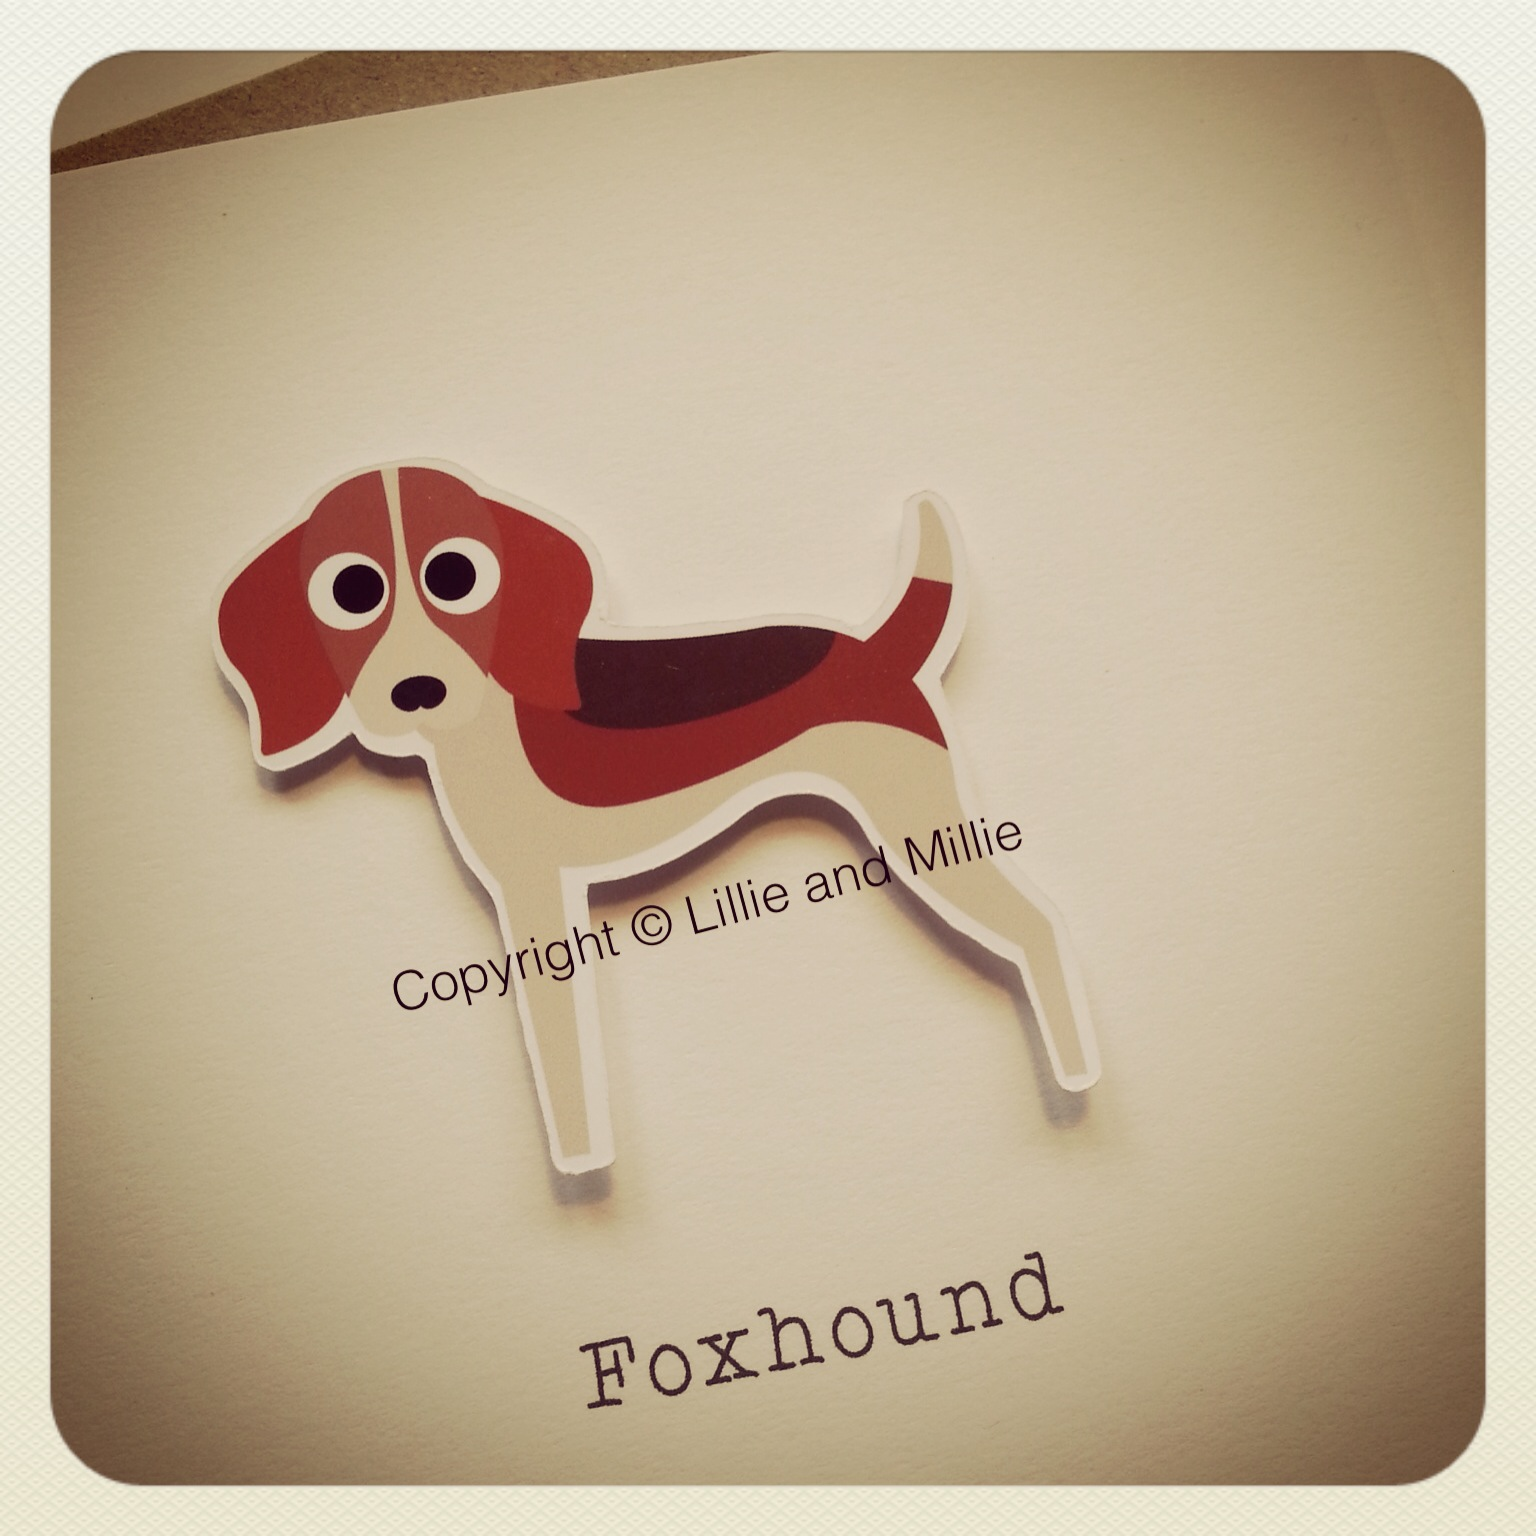 Foxhound Dog Greetings Card